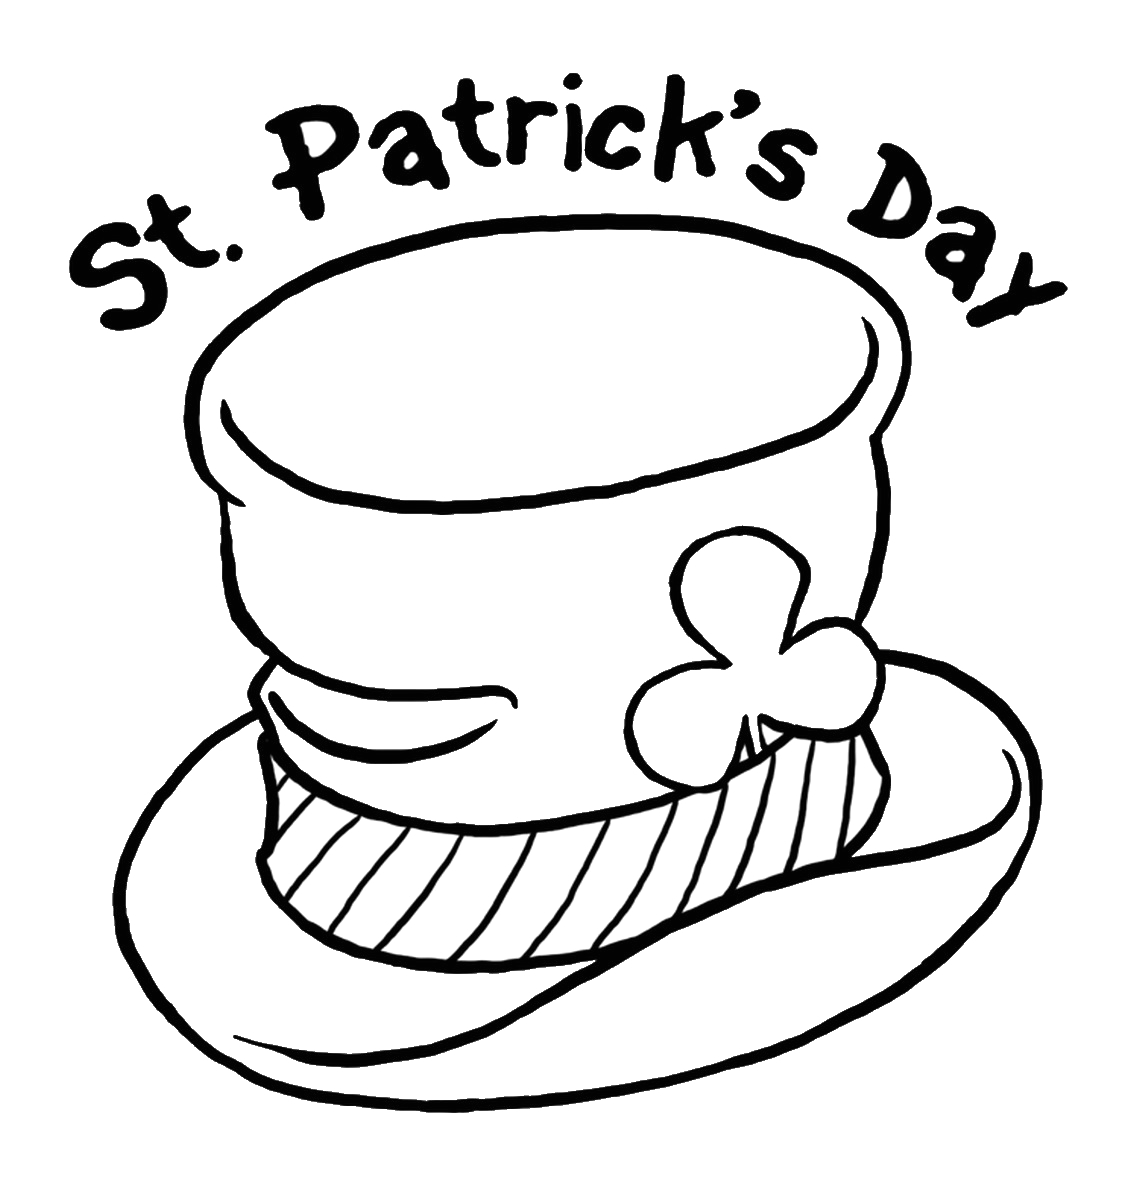 Free Printable St Patrick Day Coloring Pages St Patrick S Day Coloring Pages for Childrens Printable